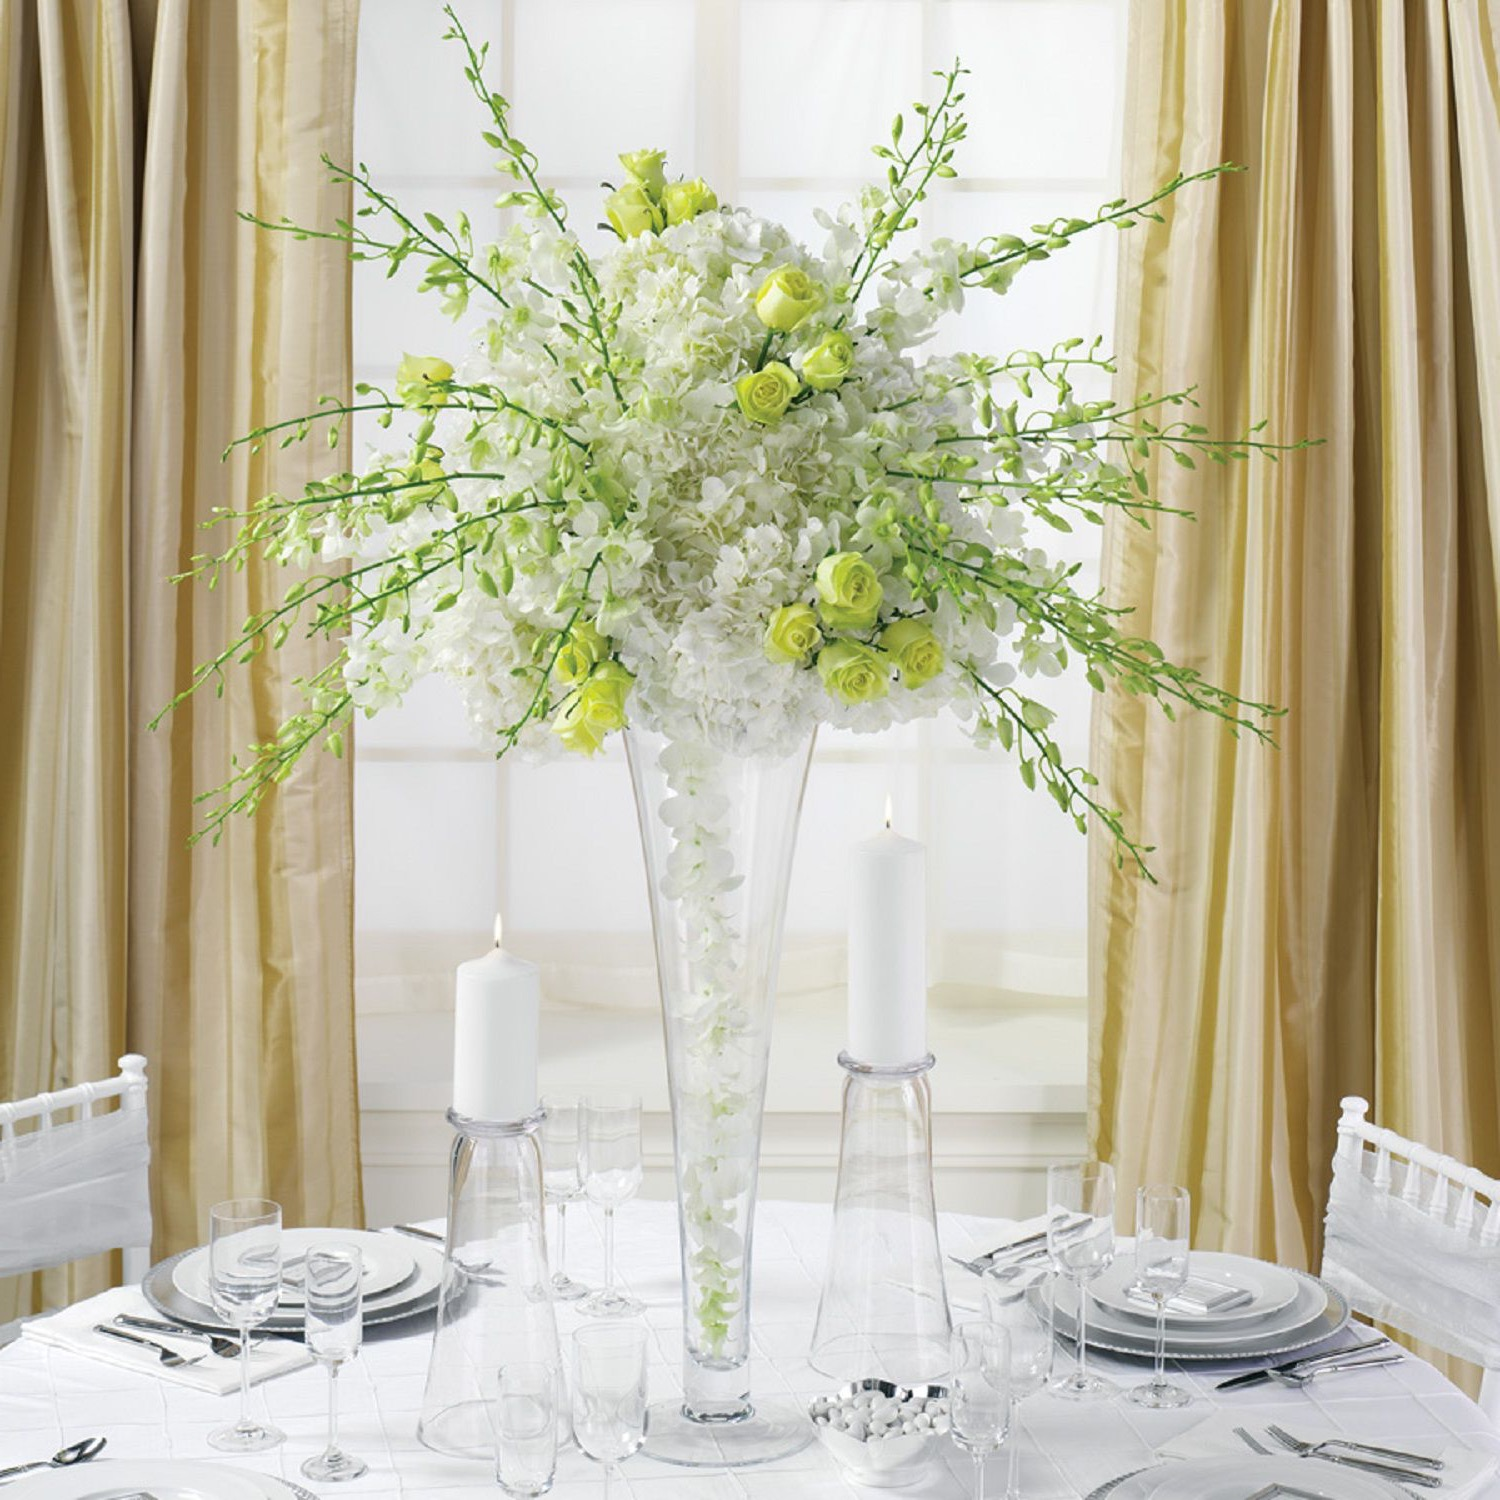 Tall Green And White Flower Centerpiece With Tall Glass Vase For Wedding (View 17 of 30)